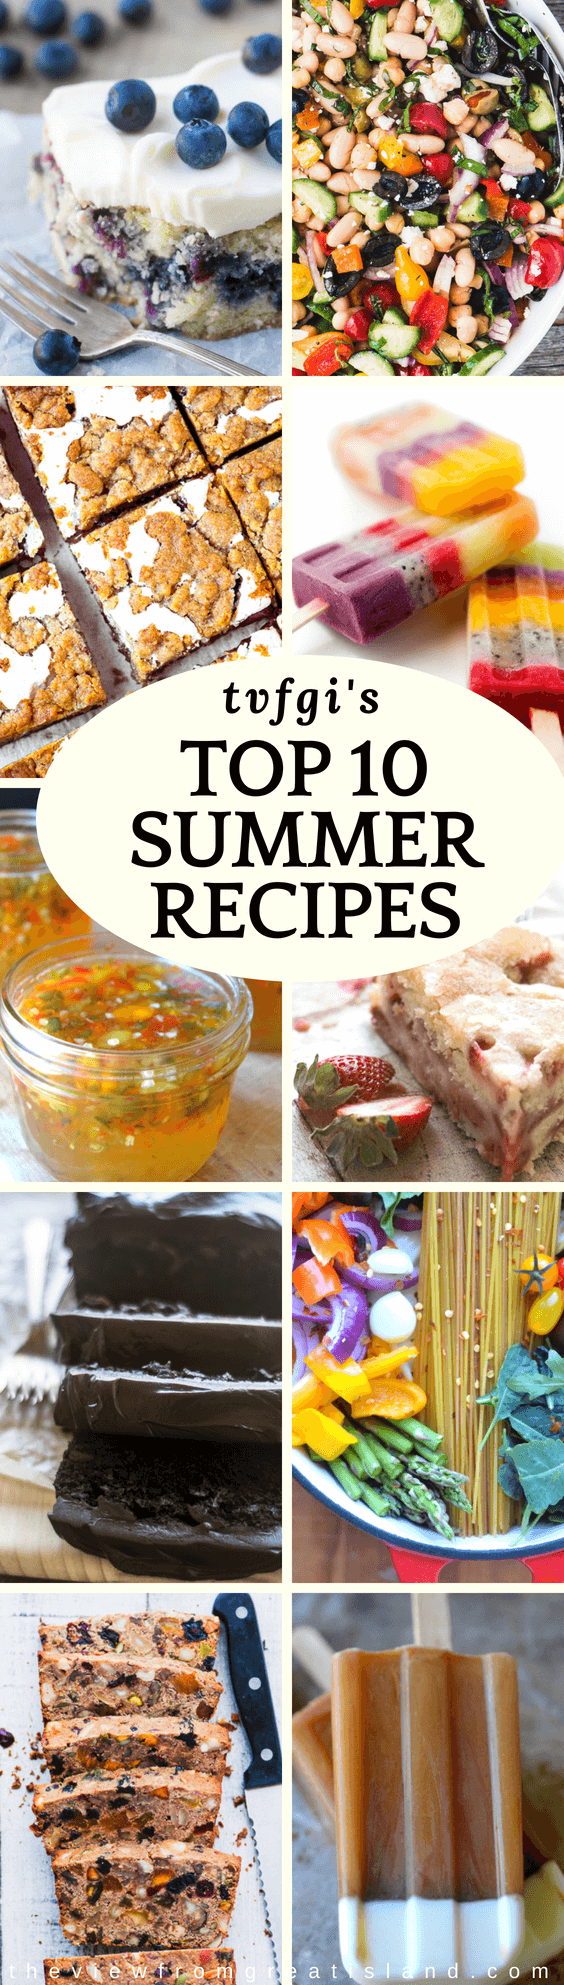 I've gathered together tvfgi's 10 most popular summer recipes to help you out a little. From decadent chocolate zucchini bread to my super healthy bean salad, I've got yourTvfgi's top 10 summer recipes, from decadent chocolate zucchini bread to a super healthy bean salad ~ #roundup #summerrecipes #summer #recipes #tvfgi #popsicles #s'mores #onepotpasta #zucchinicake #icedcoffeepopsicles #beansalad #hotpepperjelly #fro